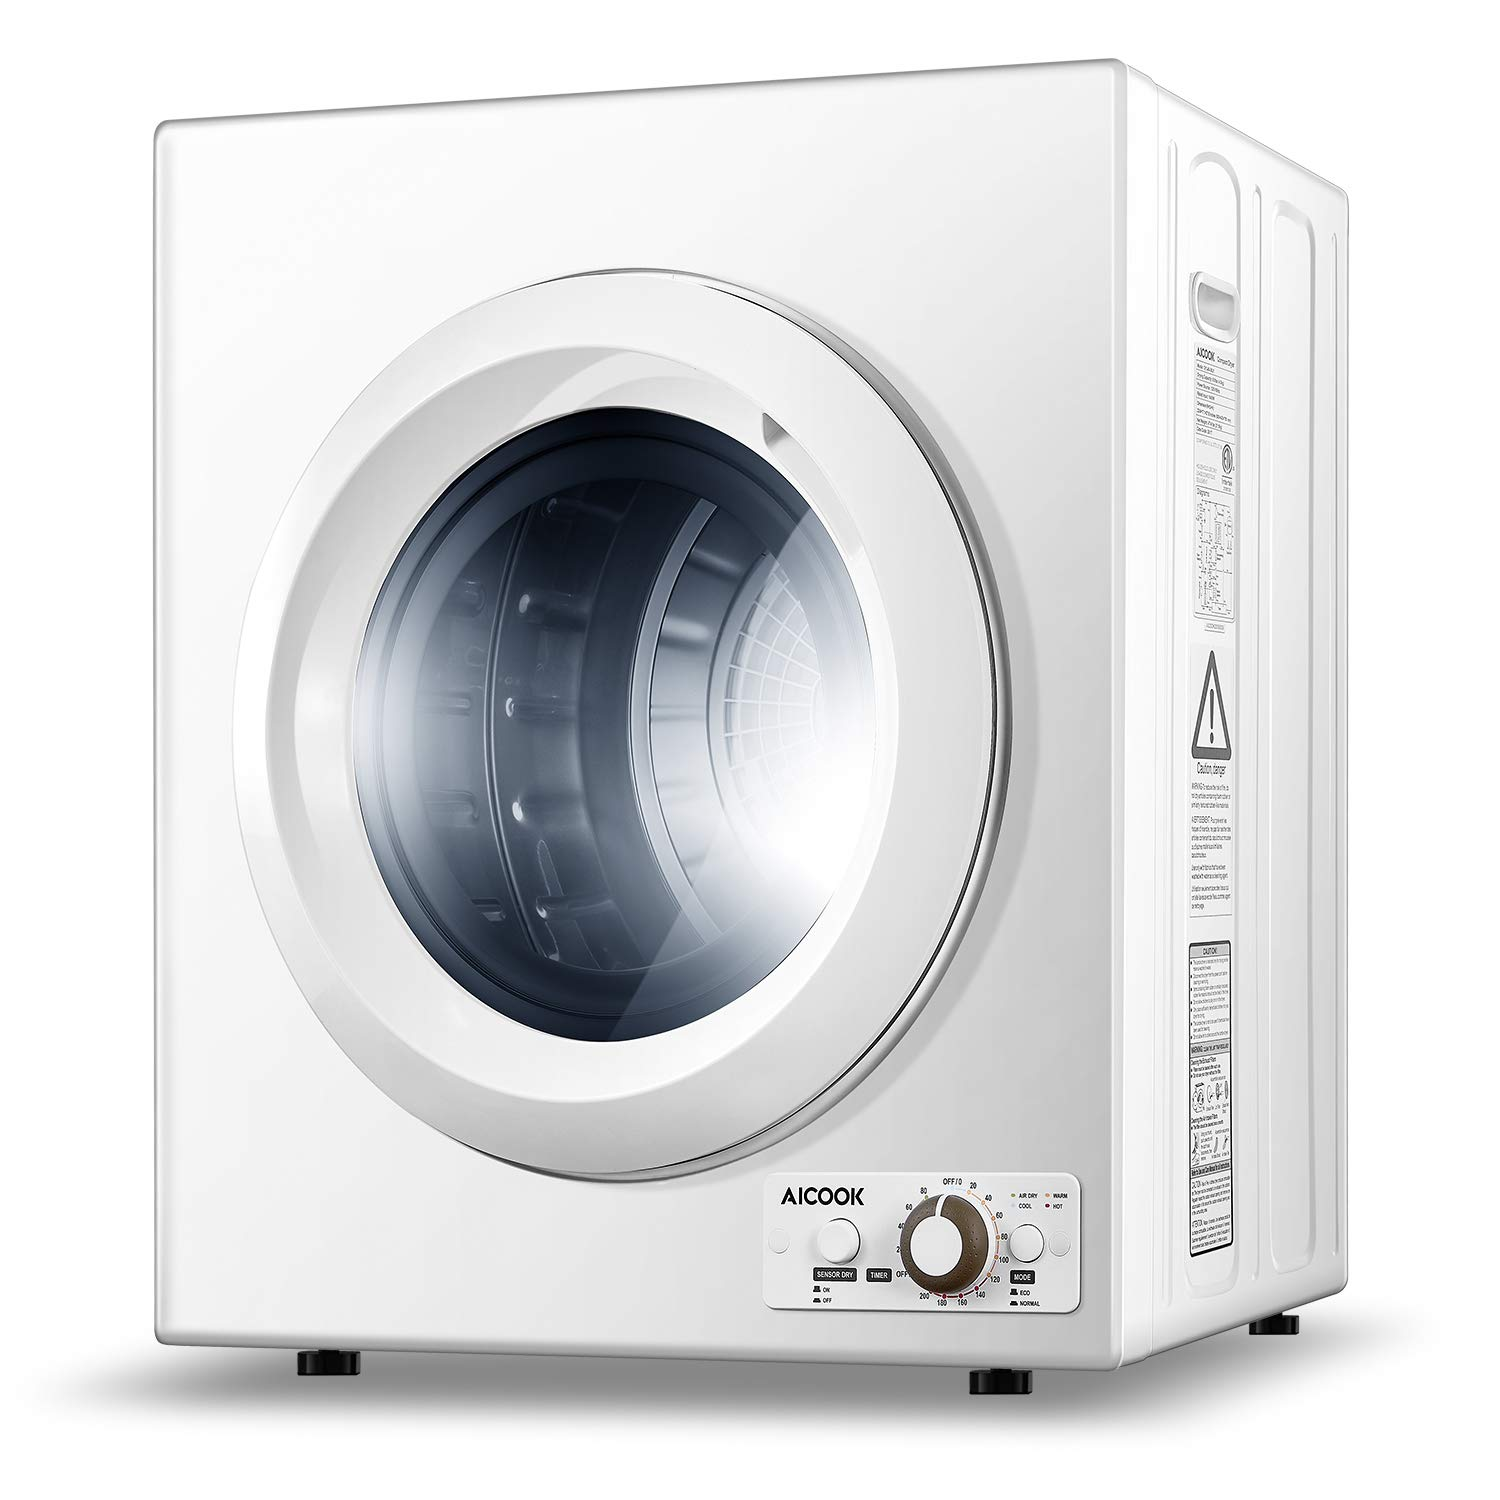 AICOOK 1400W Compact Laundry Dryer, 9 lbs Portable Dryer with Stainless Steel Tub, 2.65 Cu.Ft Compact Tumble Clothes Dryer for Apartments, Easy Control Button Panel for Variety Drying Mode (White)